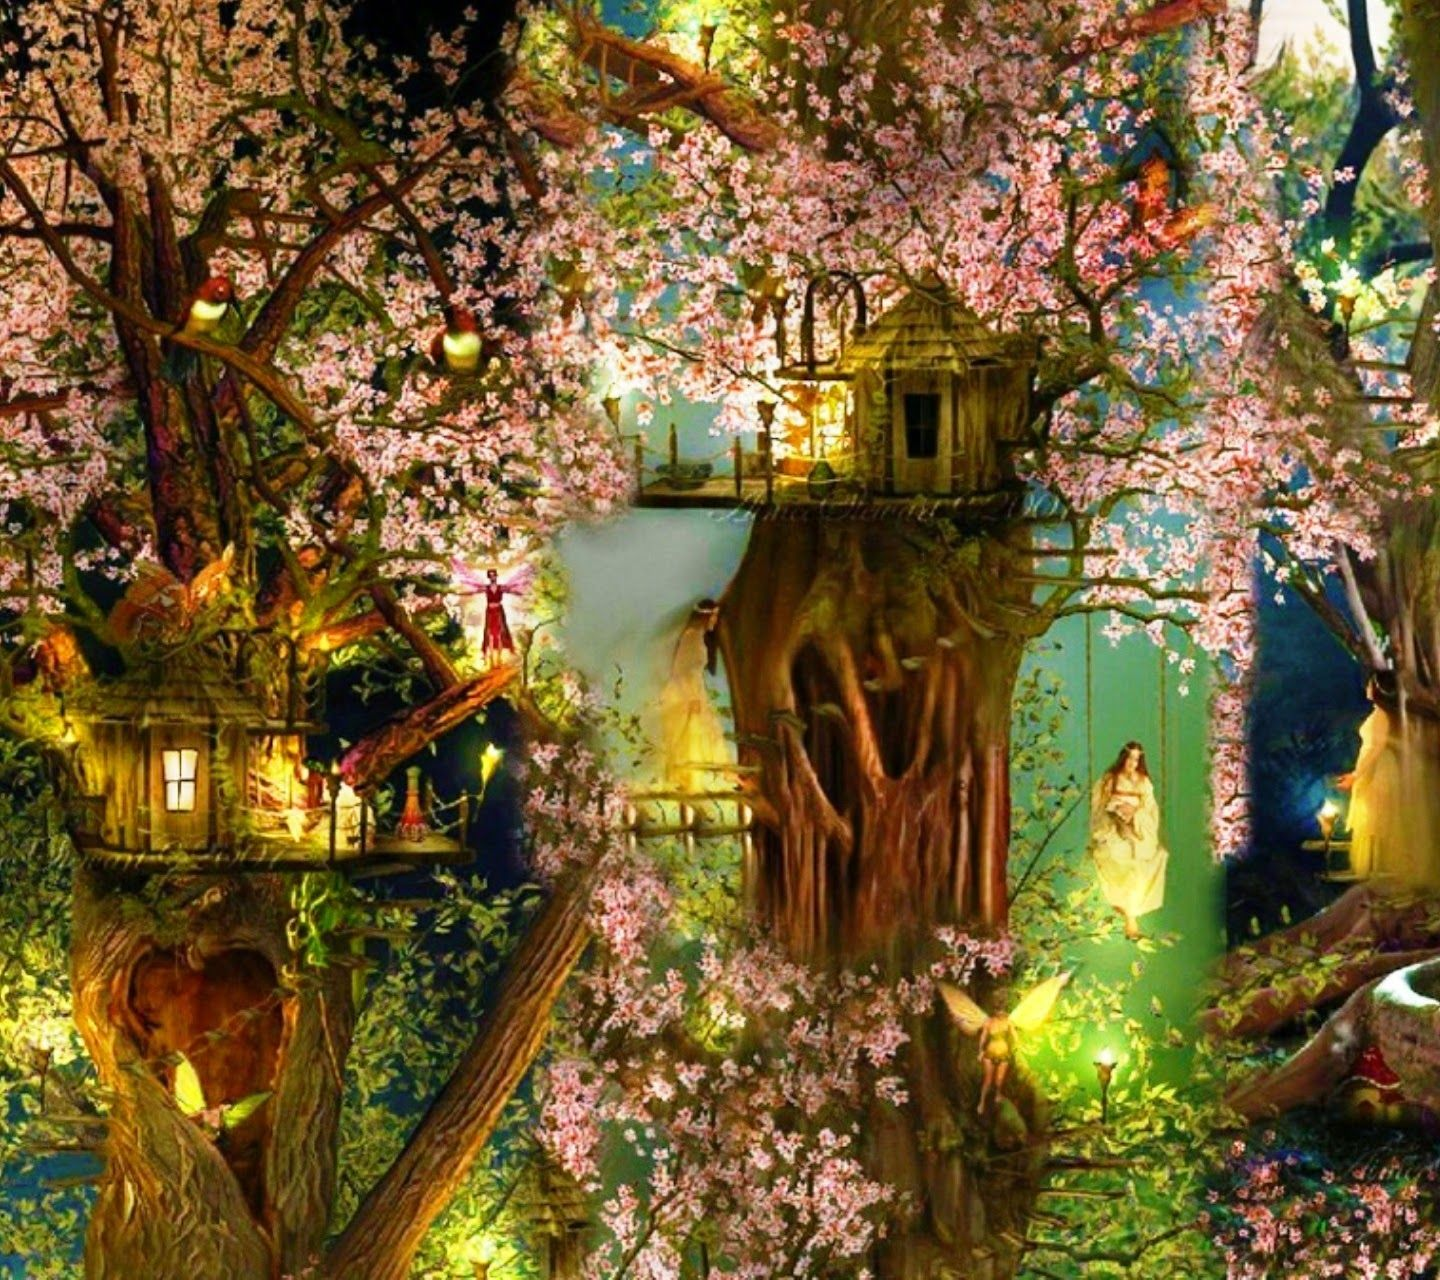 House Hd Wallpaper: Beautiful Tree House Fantasy Fairy Tale Images Pictures HD